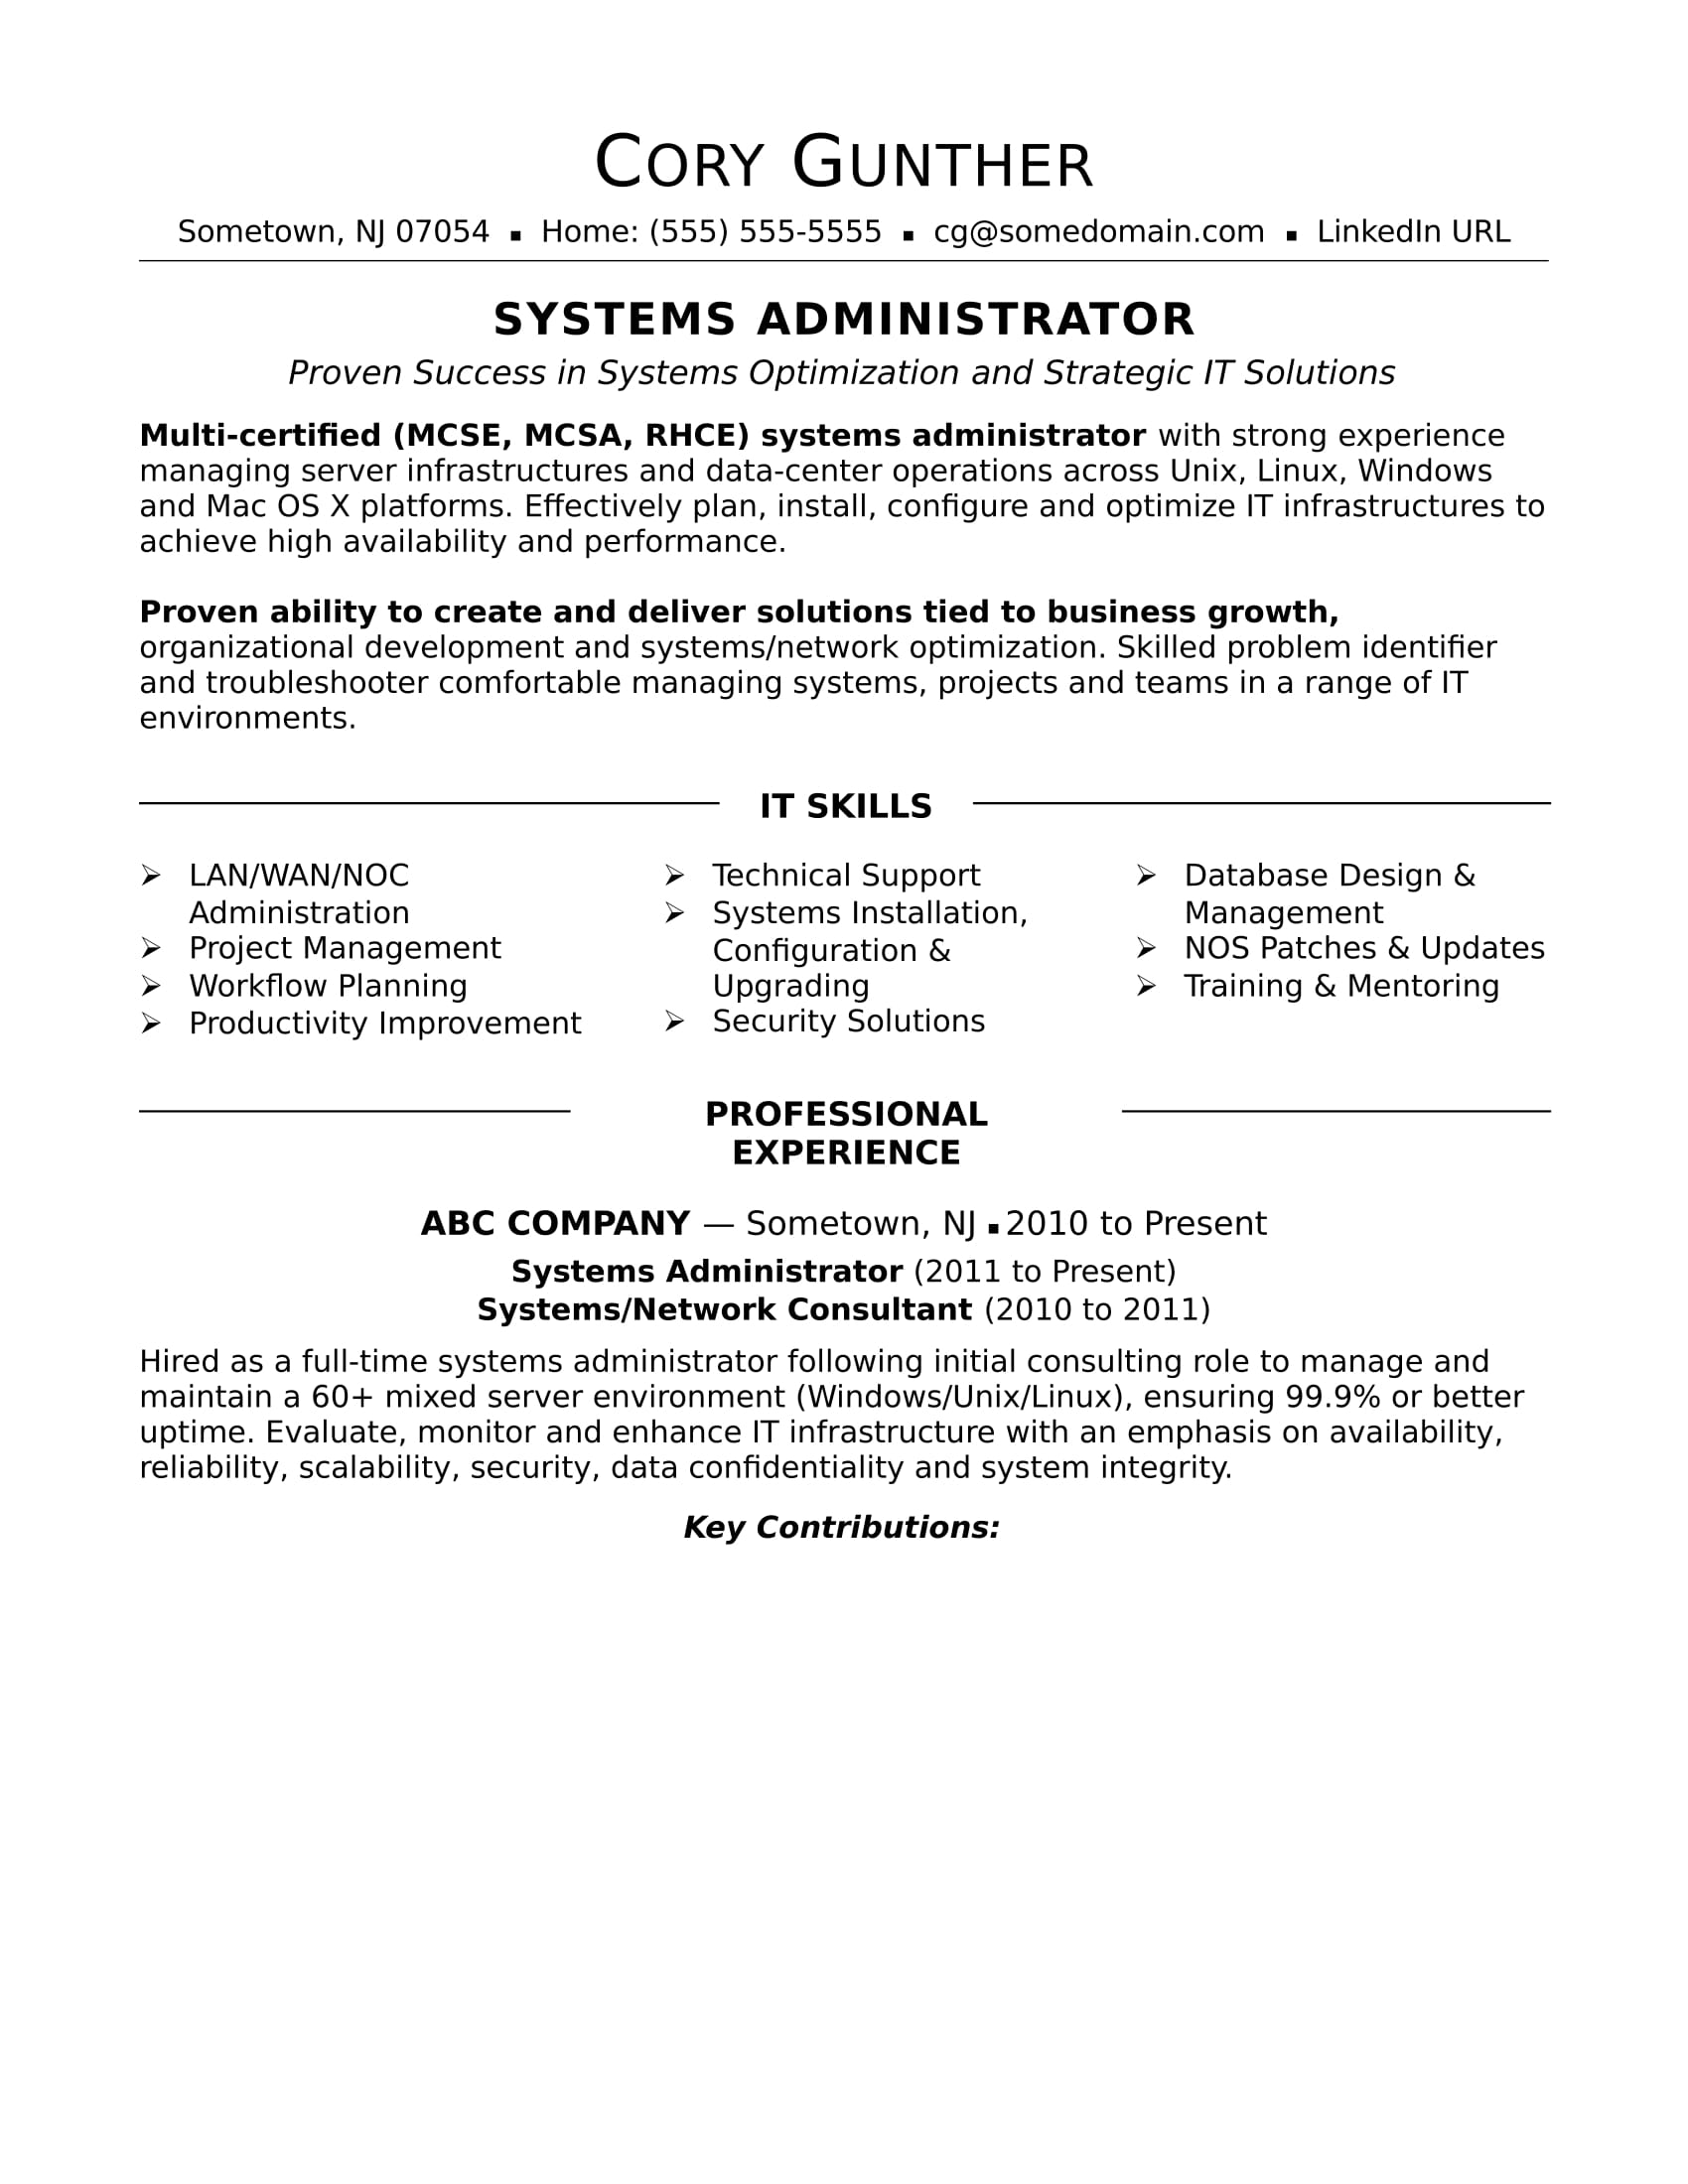 Sample Resume For An Experienced Systems Administrator  Skills Sample Resume